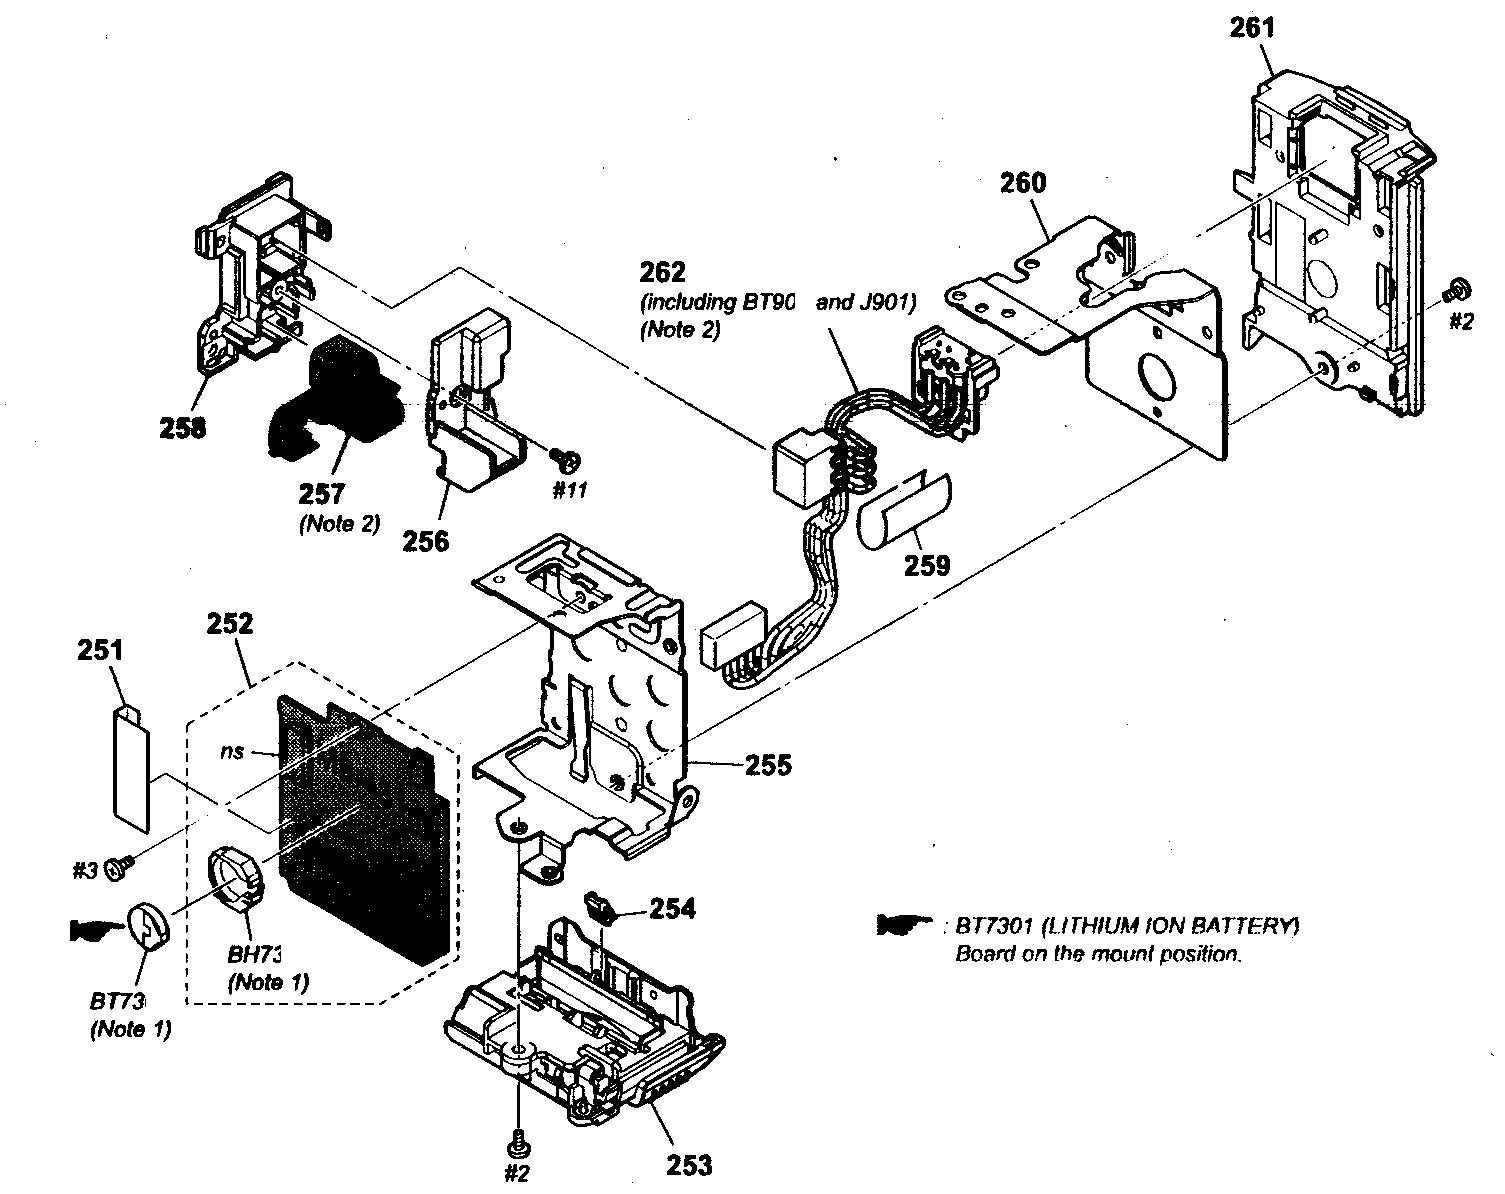 REAR SECTION Diagram & Parts List for Model hdrcx150 Sony